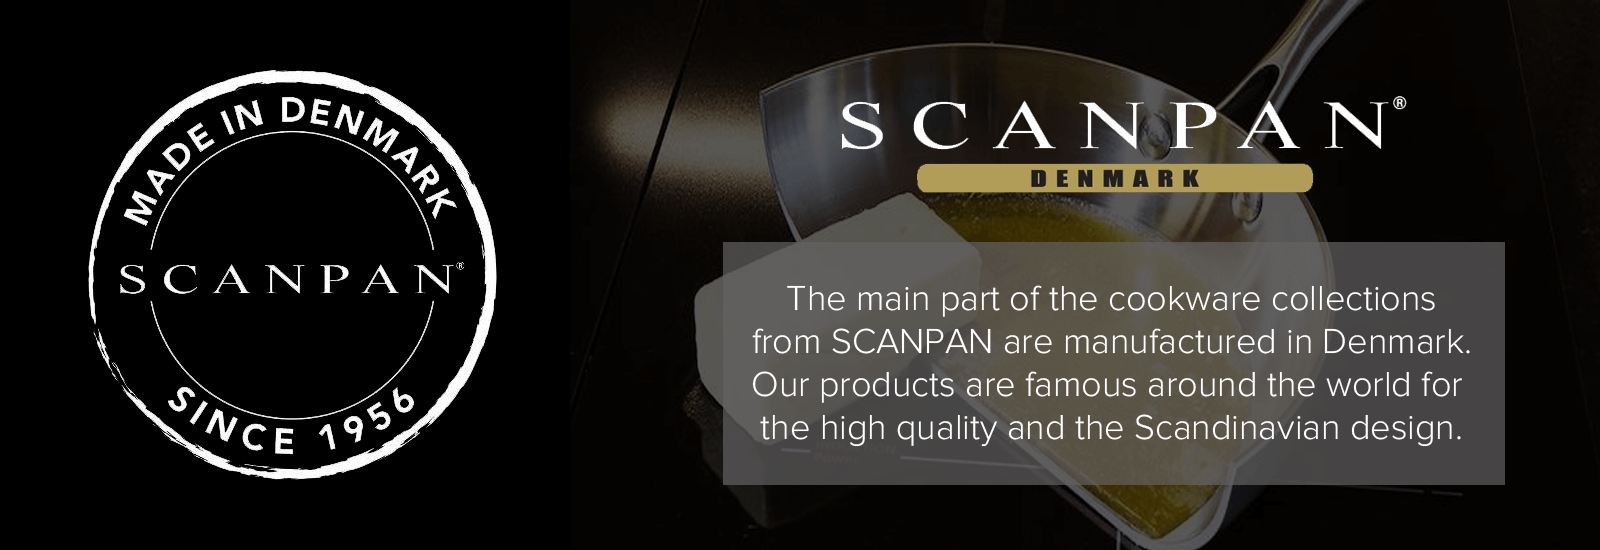 Scanpan Made in Denmark